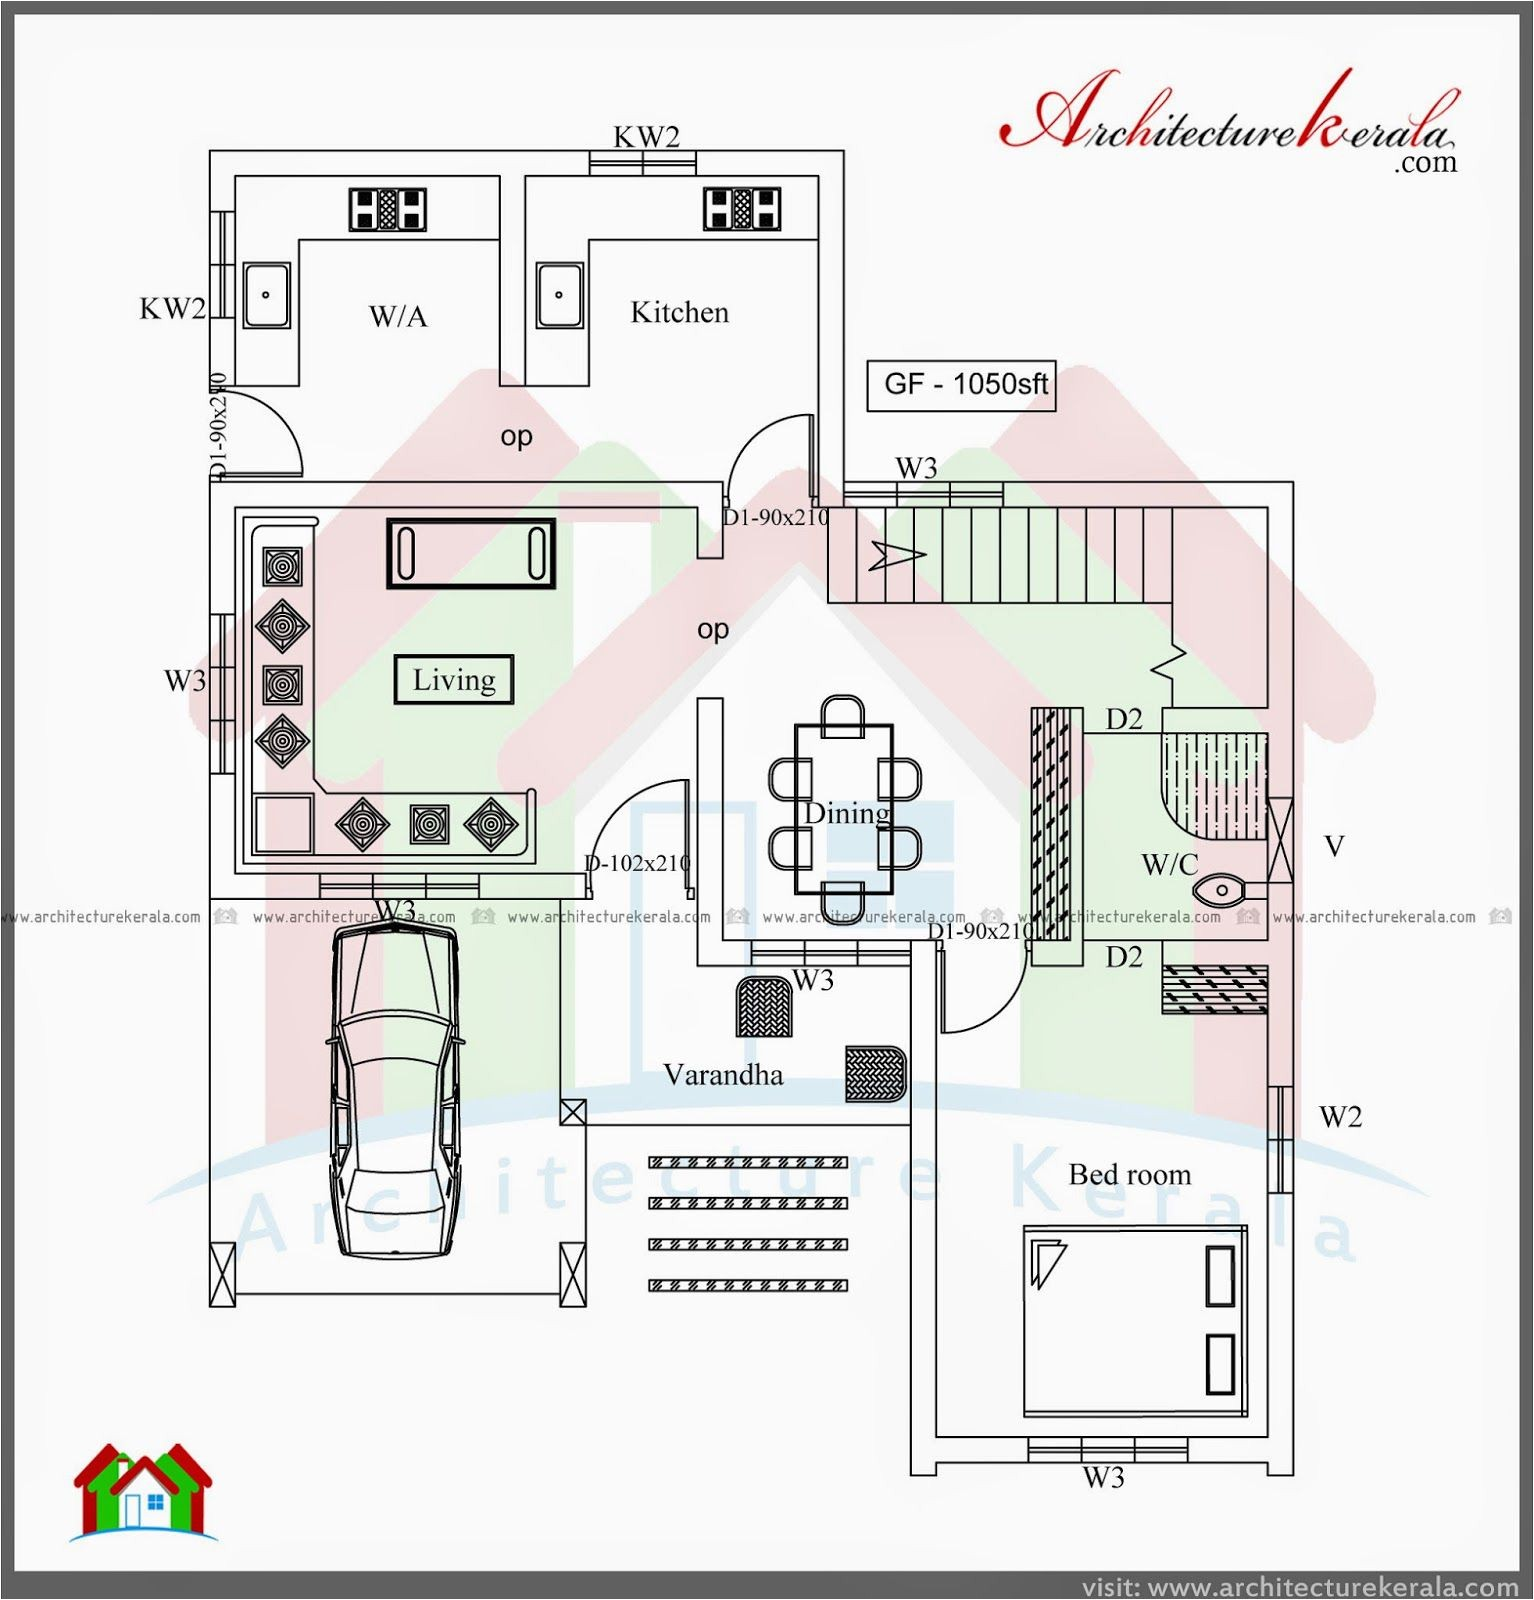 2 Bedroom Retirement House Plans 2 Bedroom Retirement House Plans 2018 House Plans and